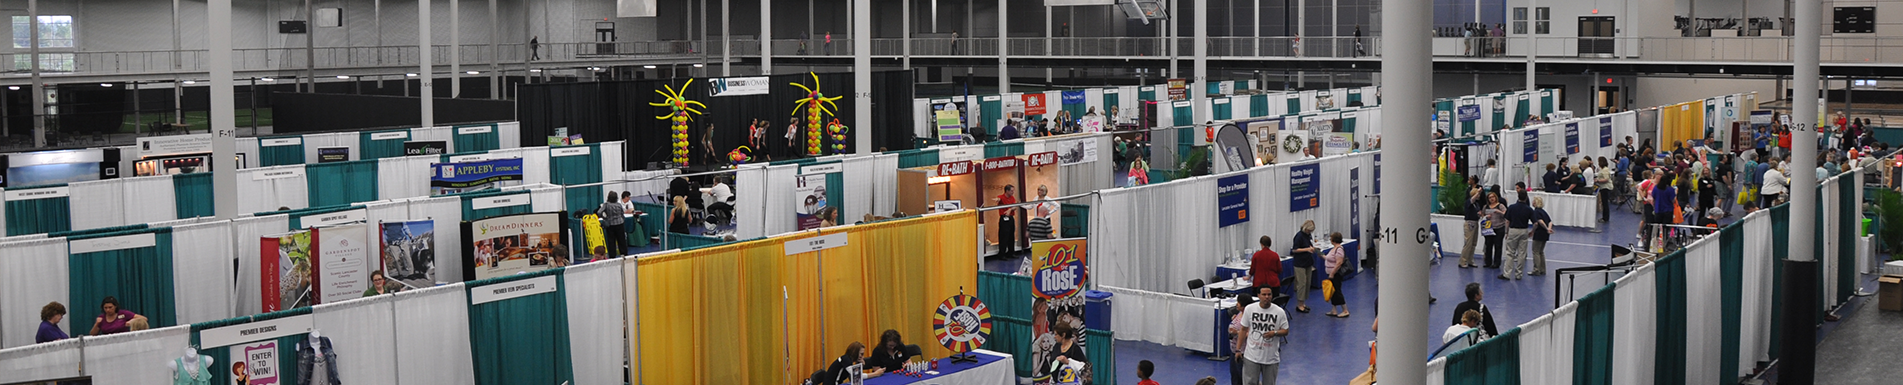 Trade show at Spooky Nook Meetings & Events